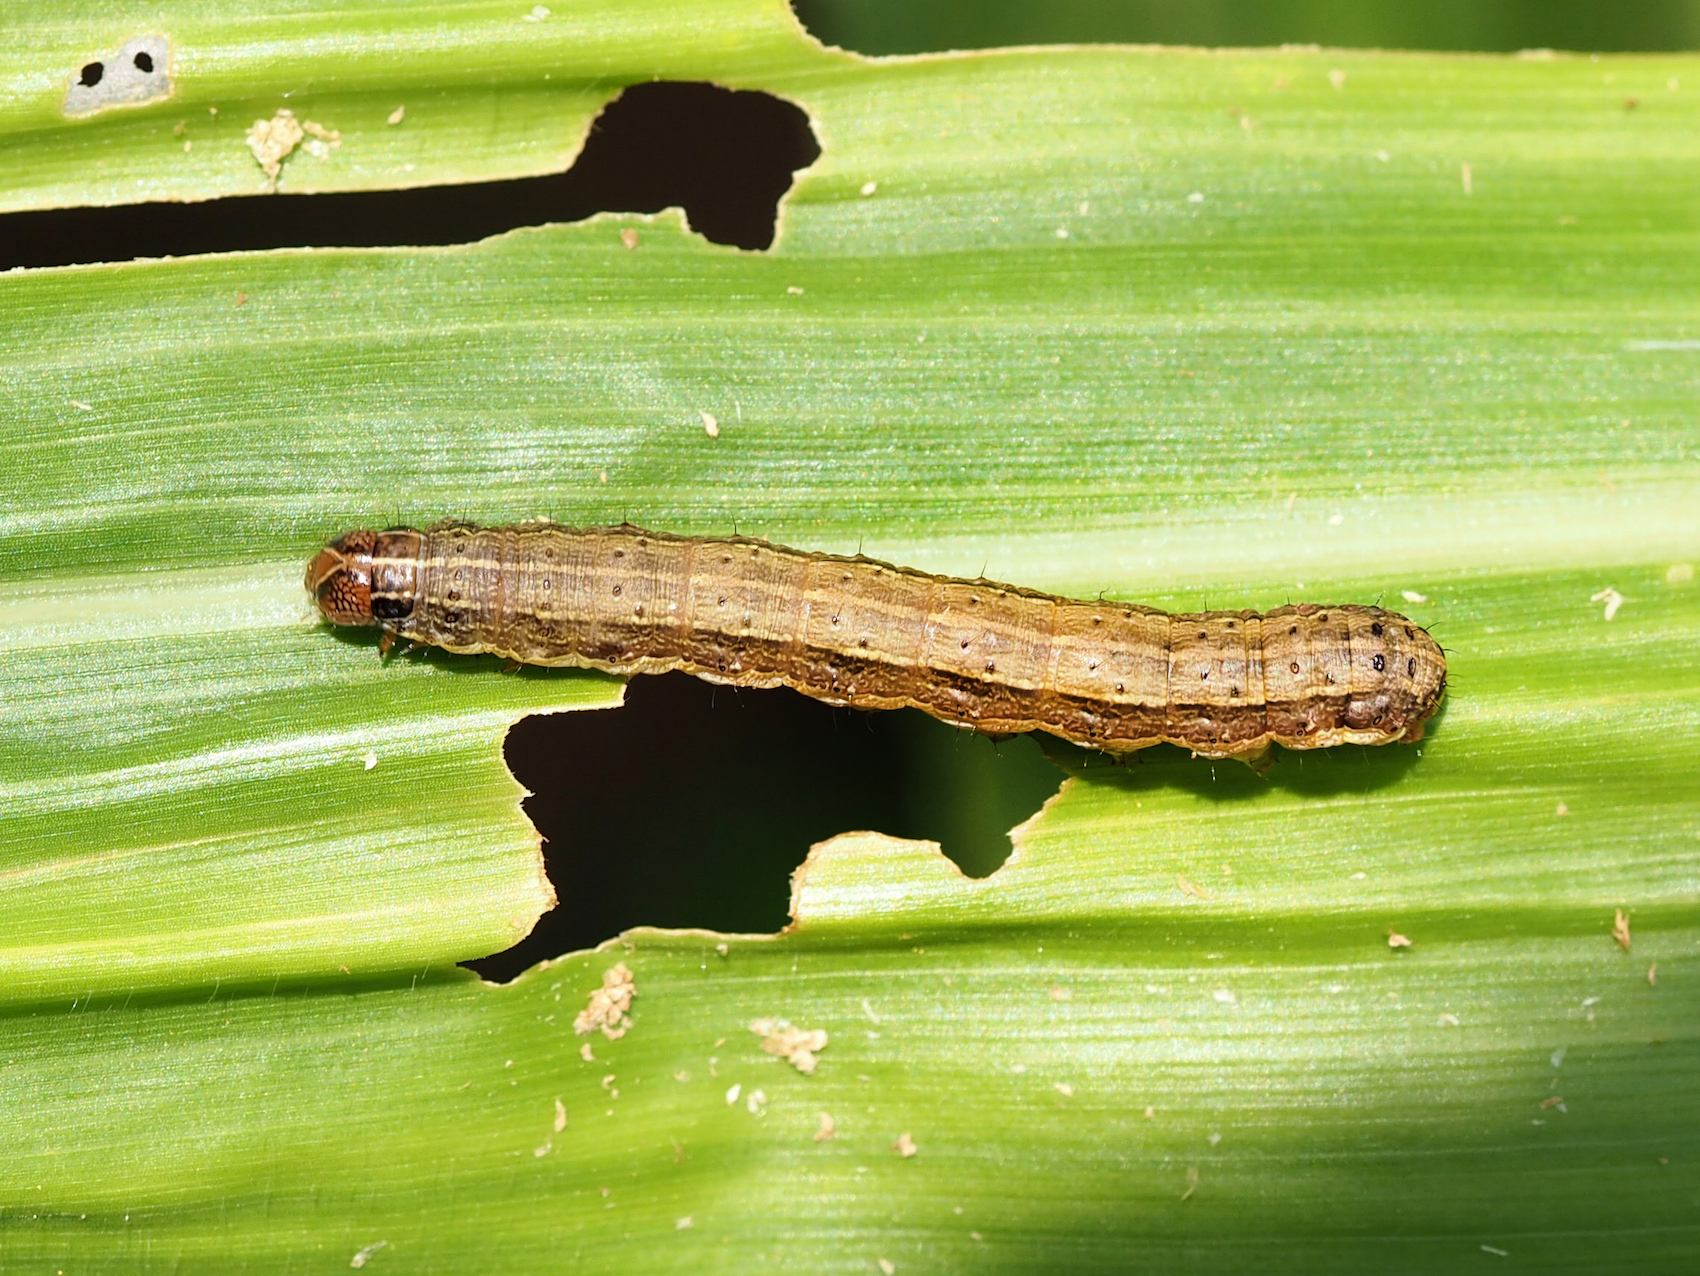 A fall armyworm on a damaged leaf in Nigeria, 2017. (Photo: G. Goergen/IITA)